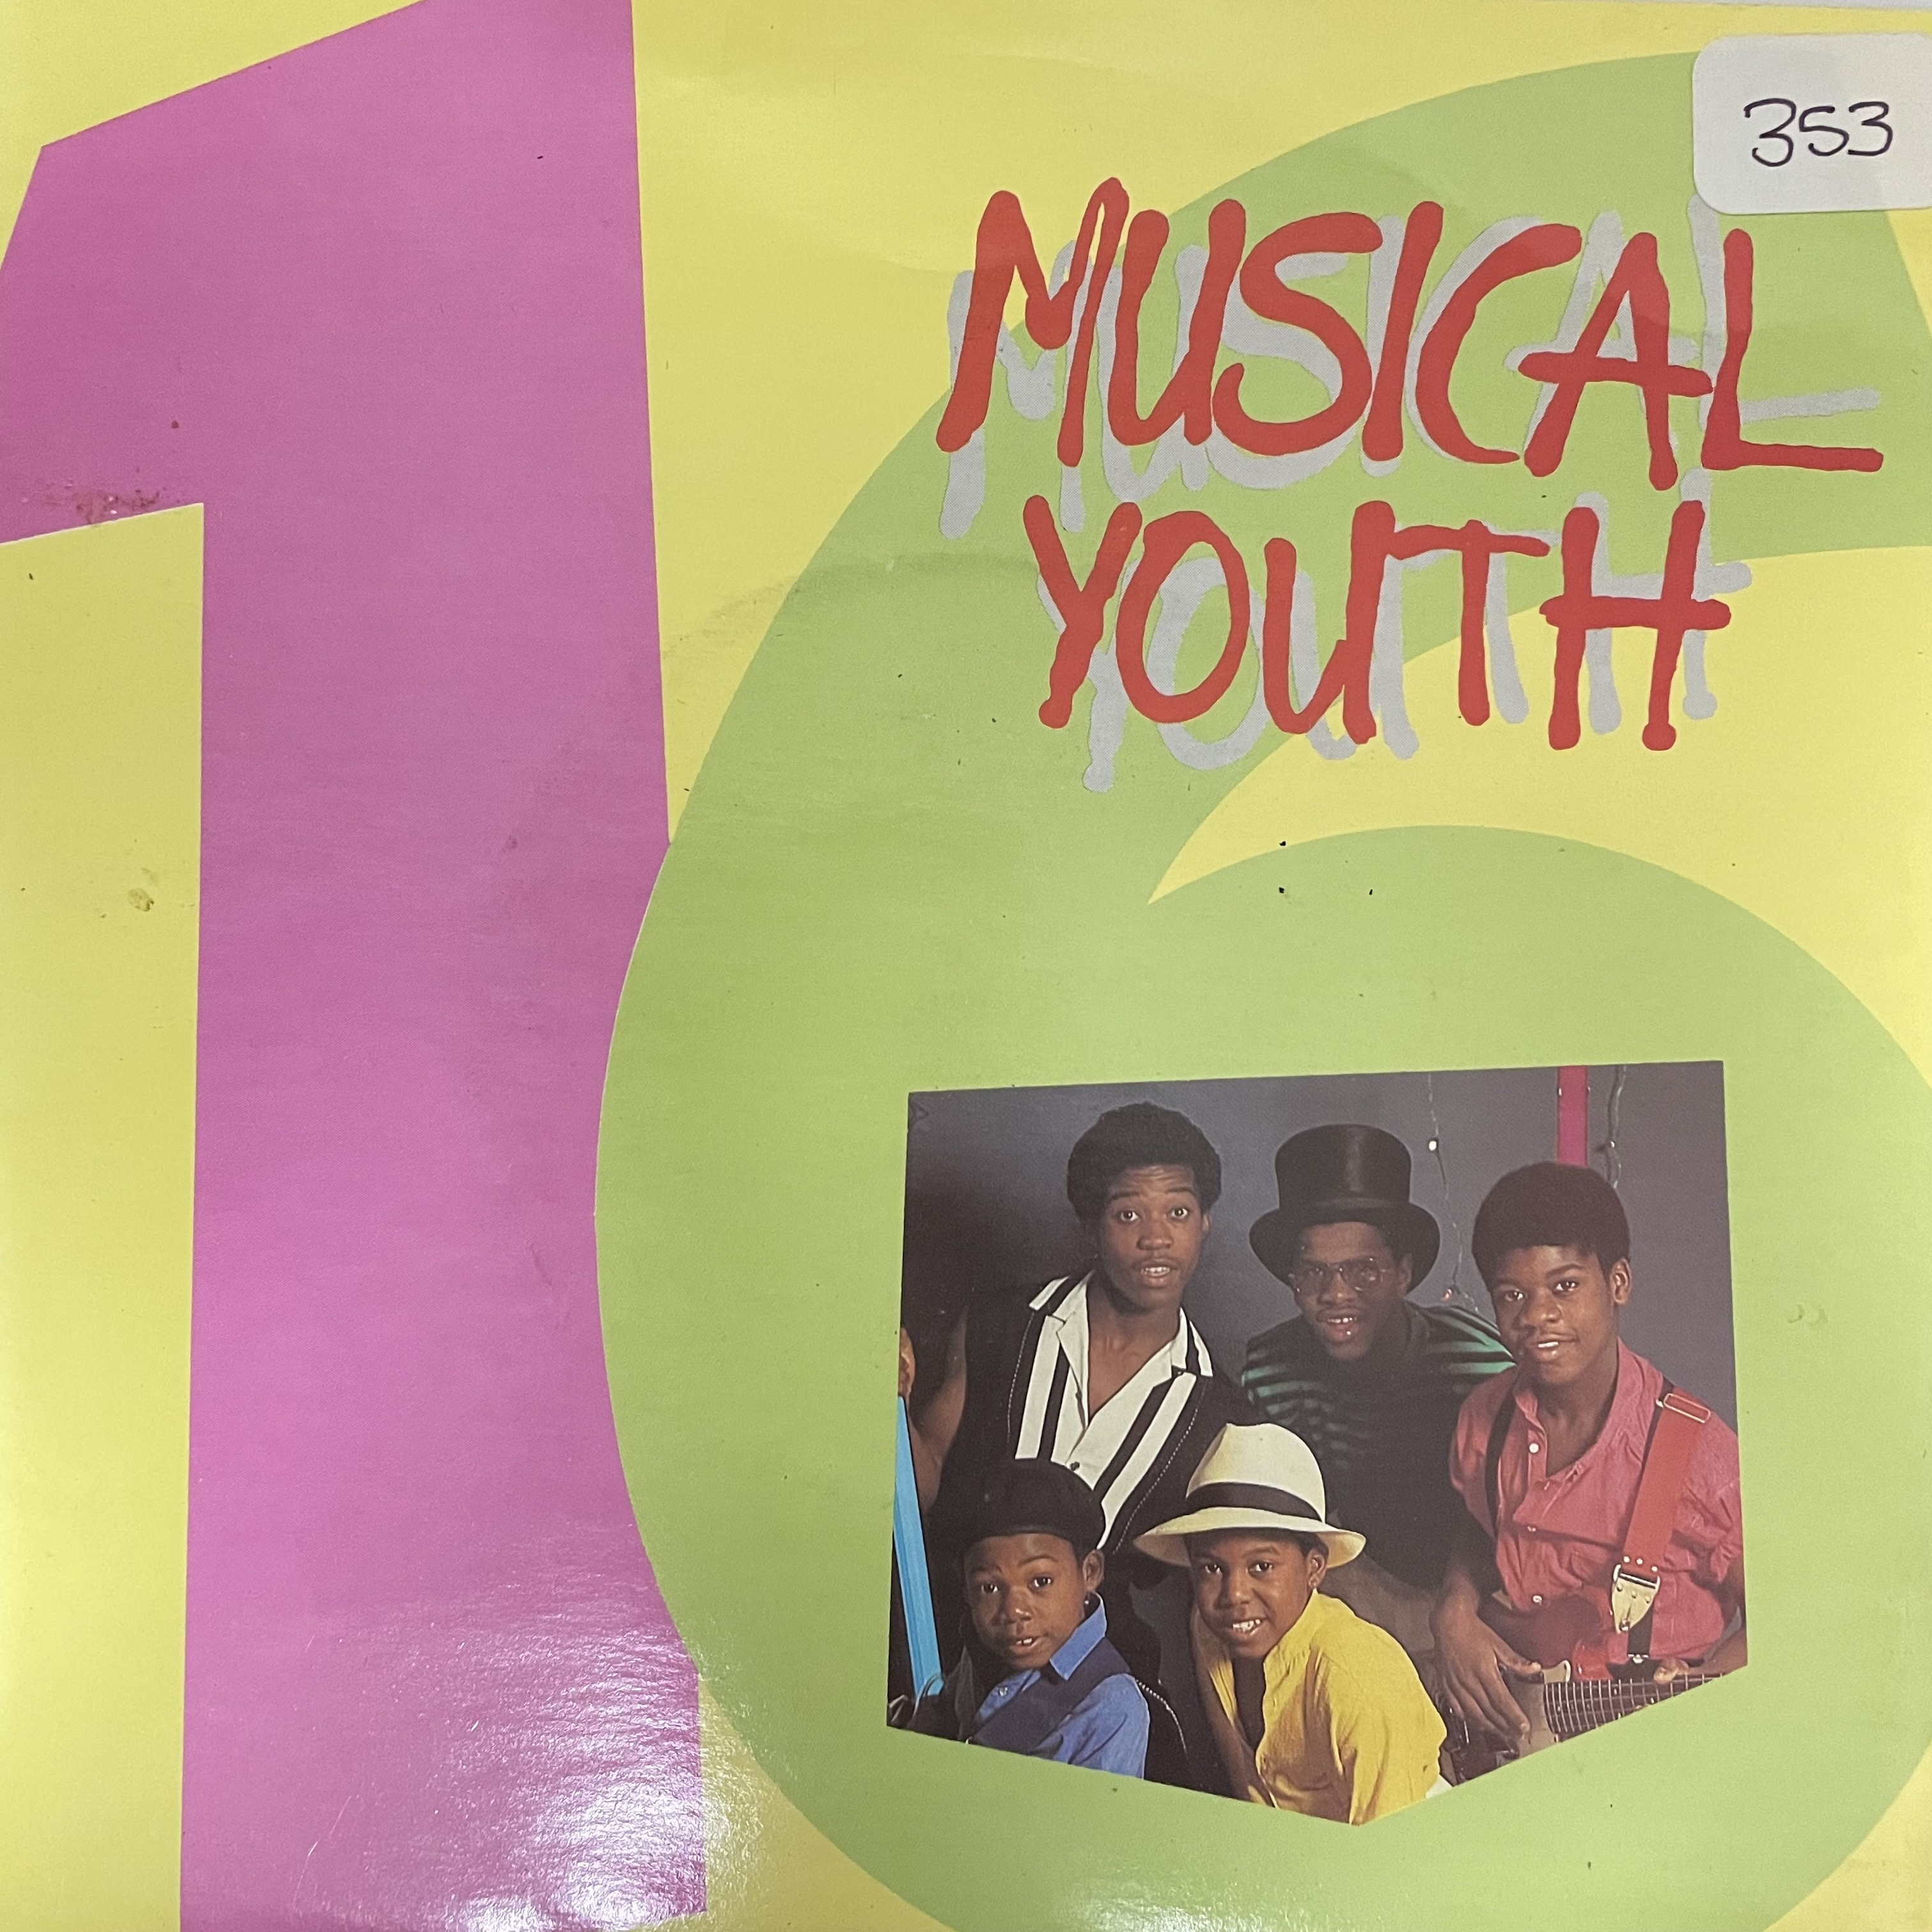 Musical Youth - Sixteen【7-20724】